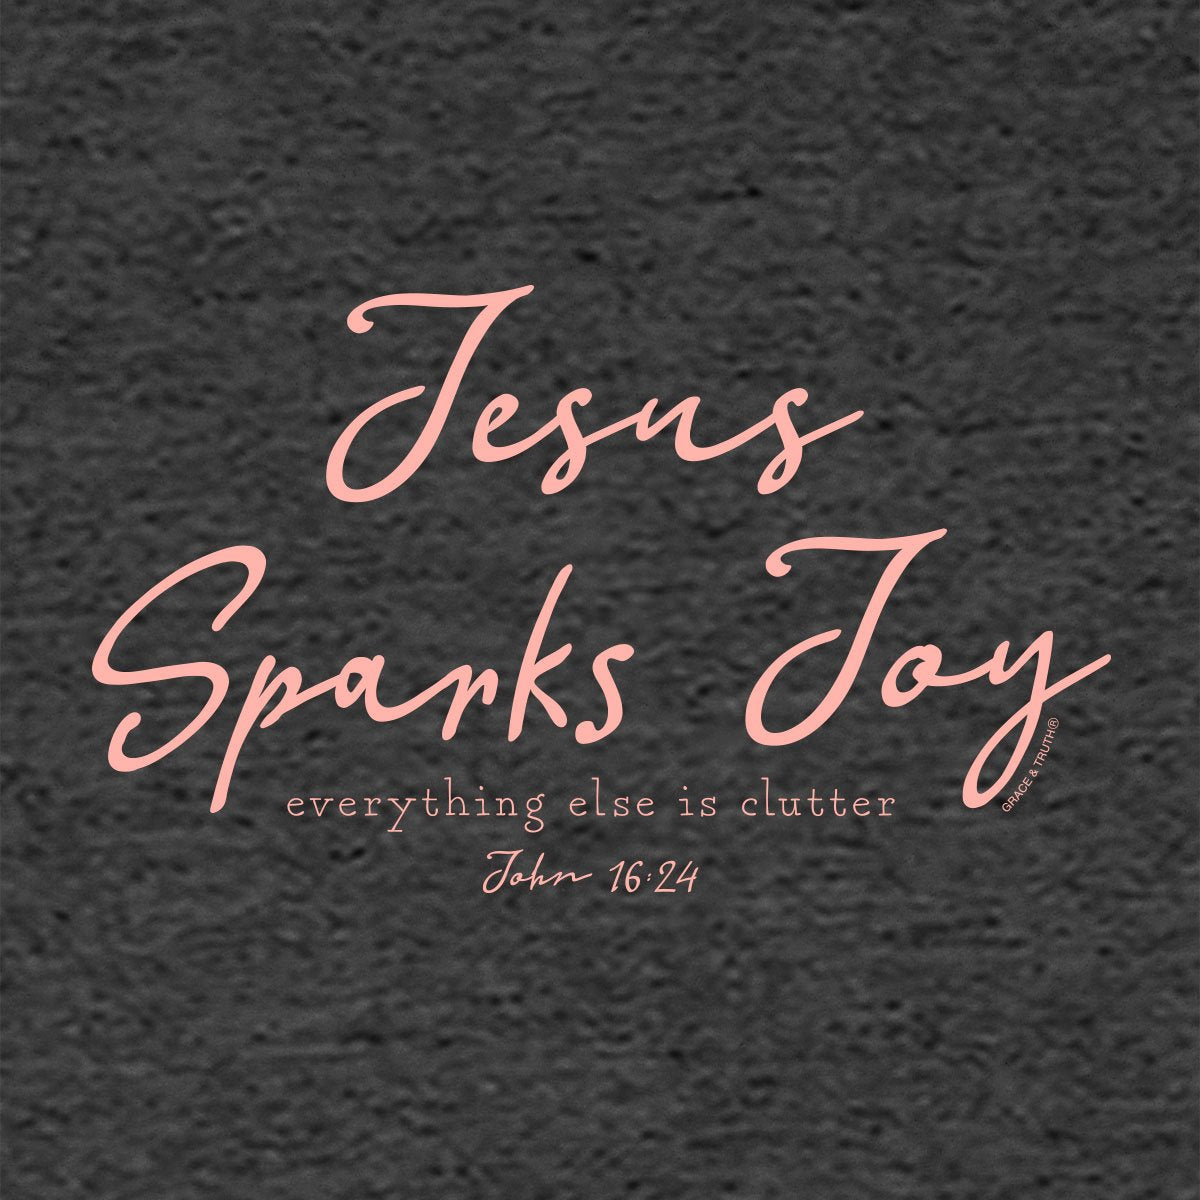 grace & truth Christian T-Shirt Jesus Sparks Joy Romans 15:13